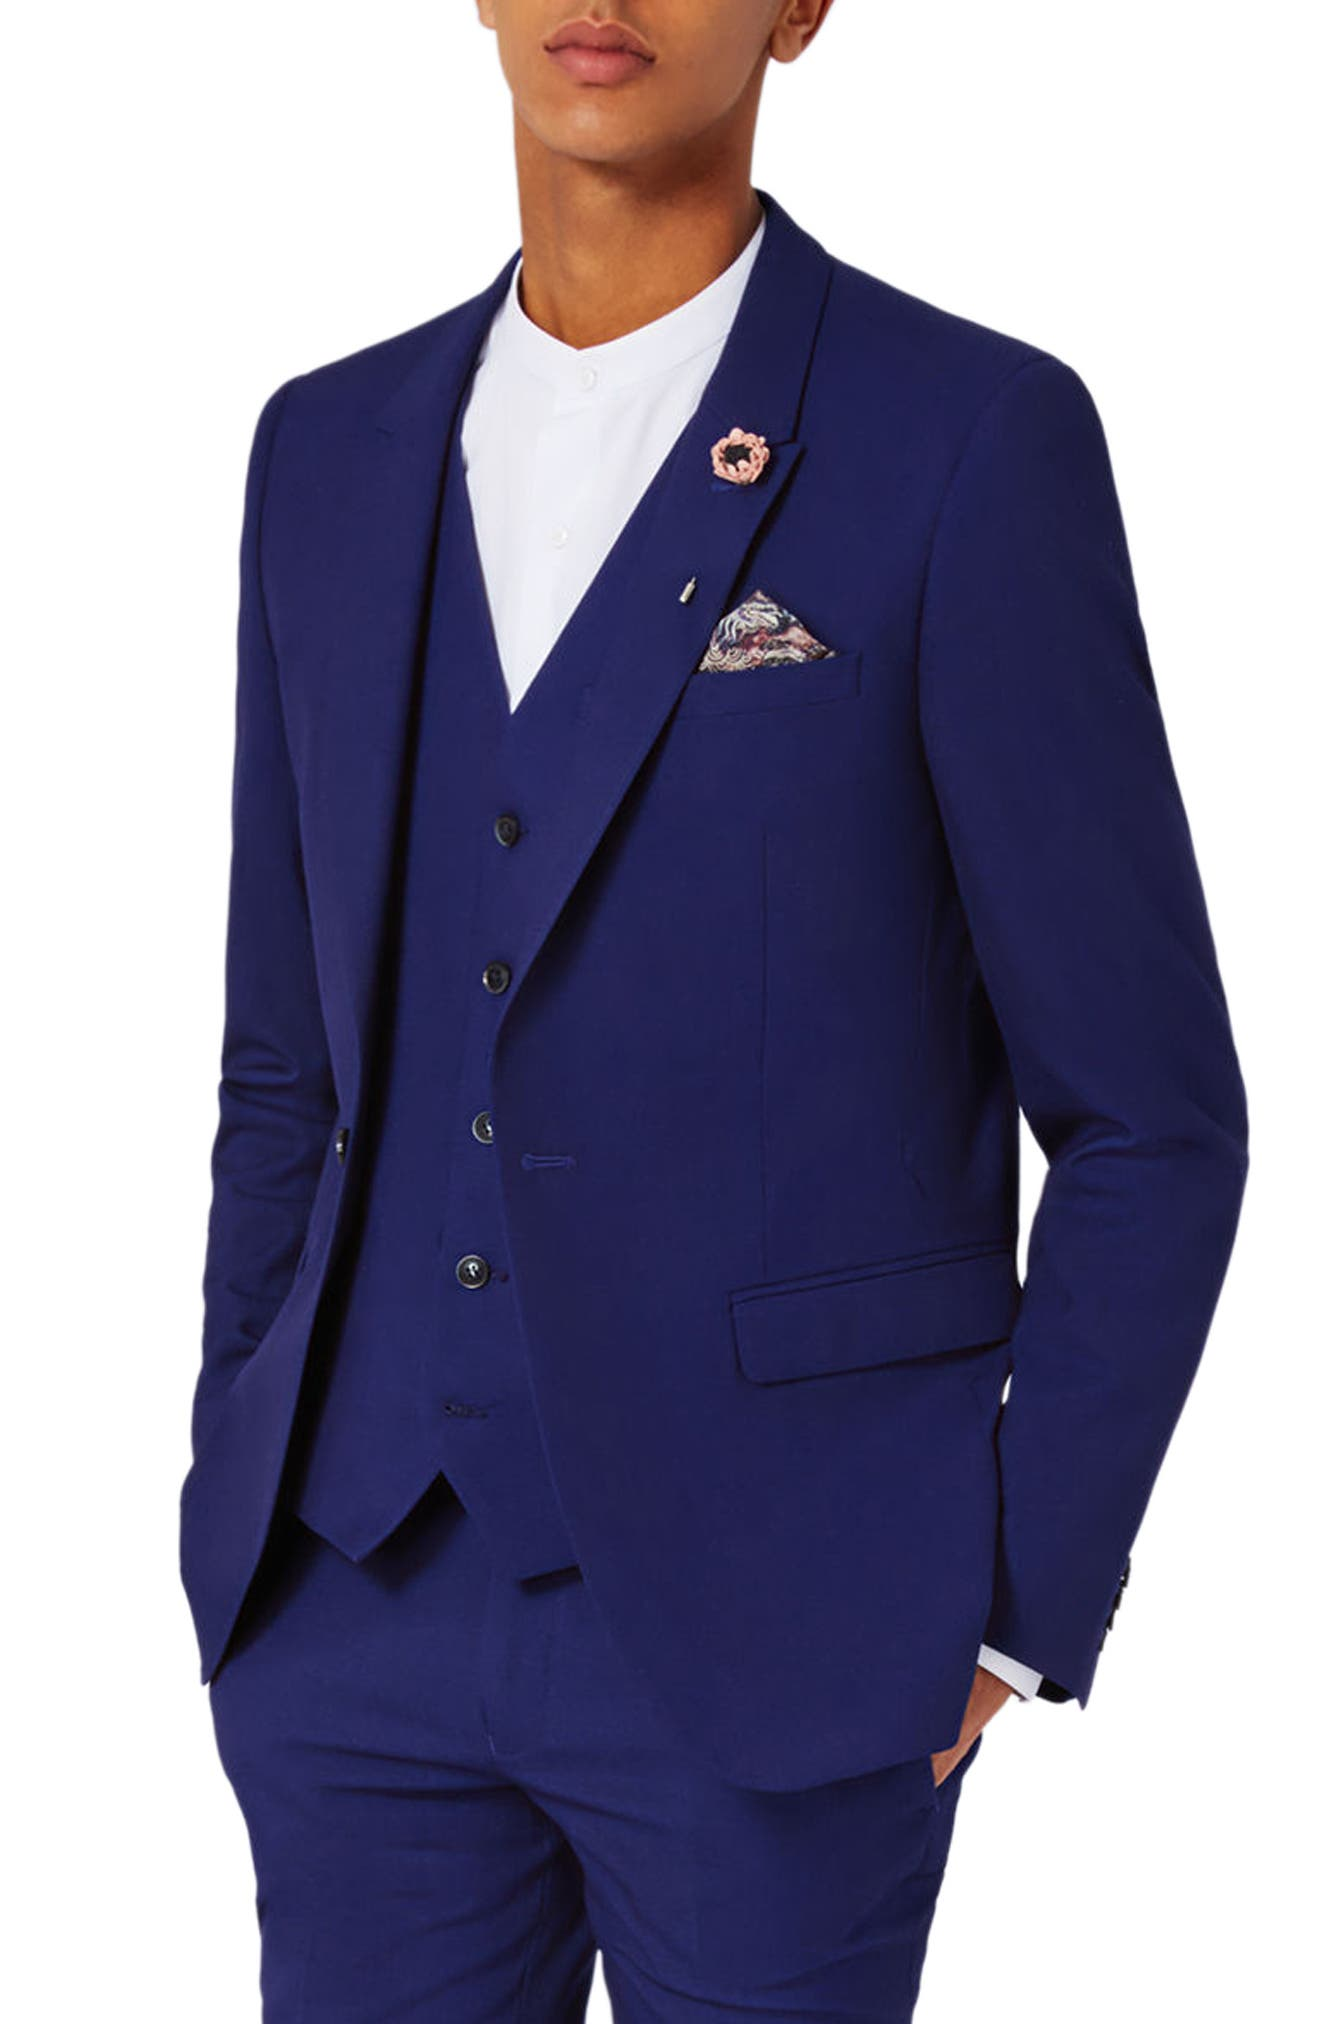 Topman Infinity Ultra Skinny Fit Suit Jacket